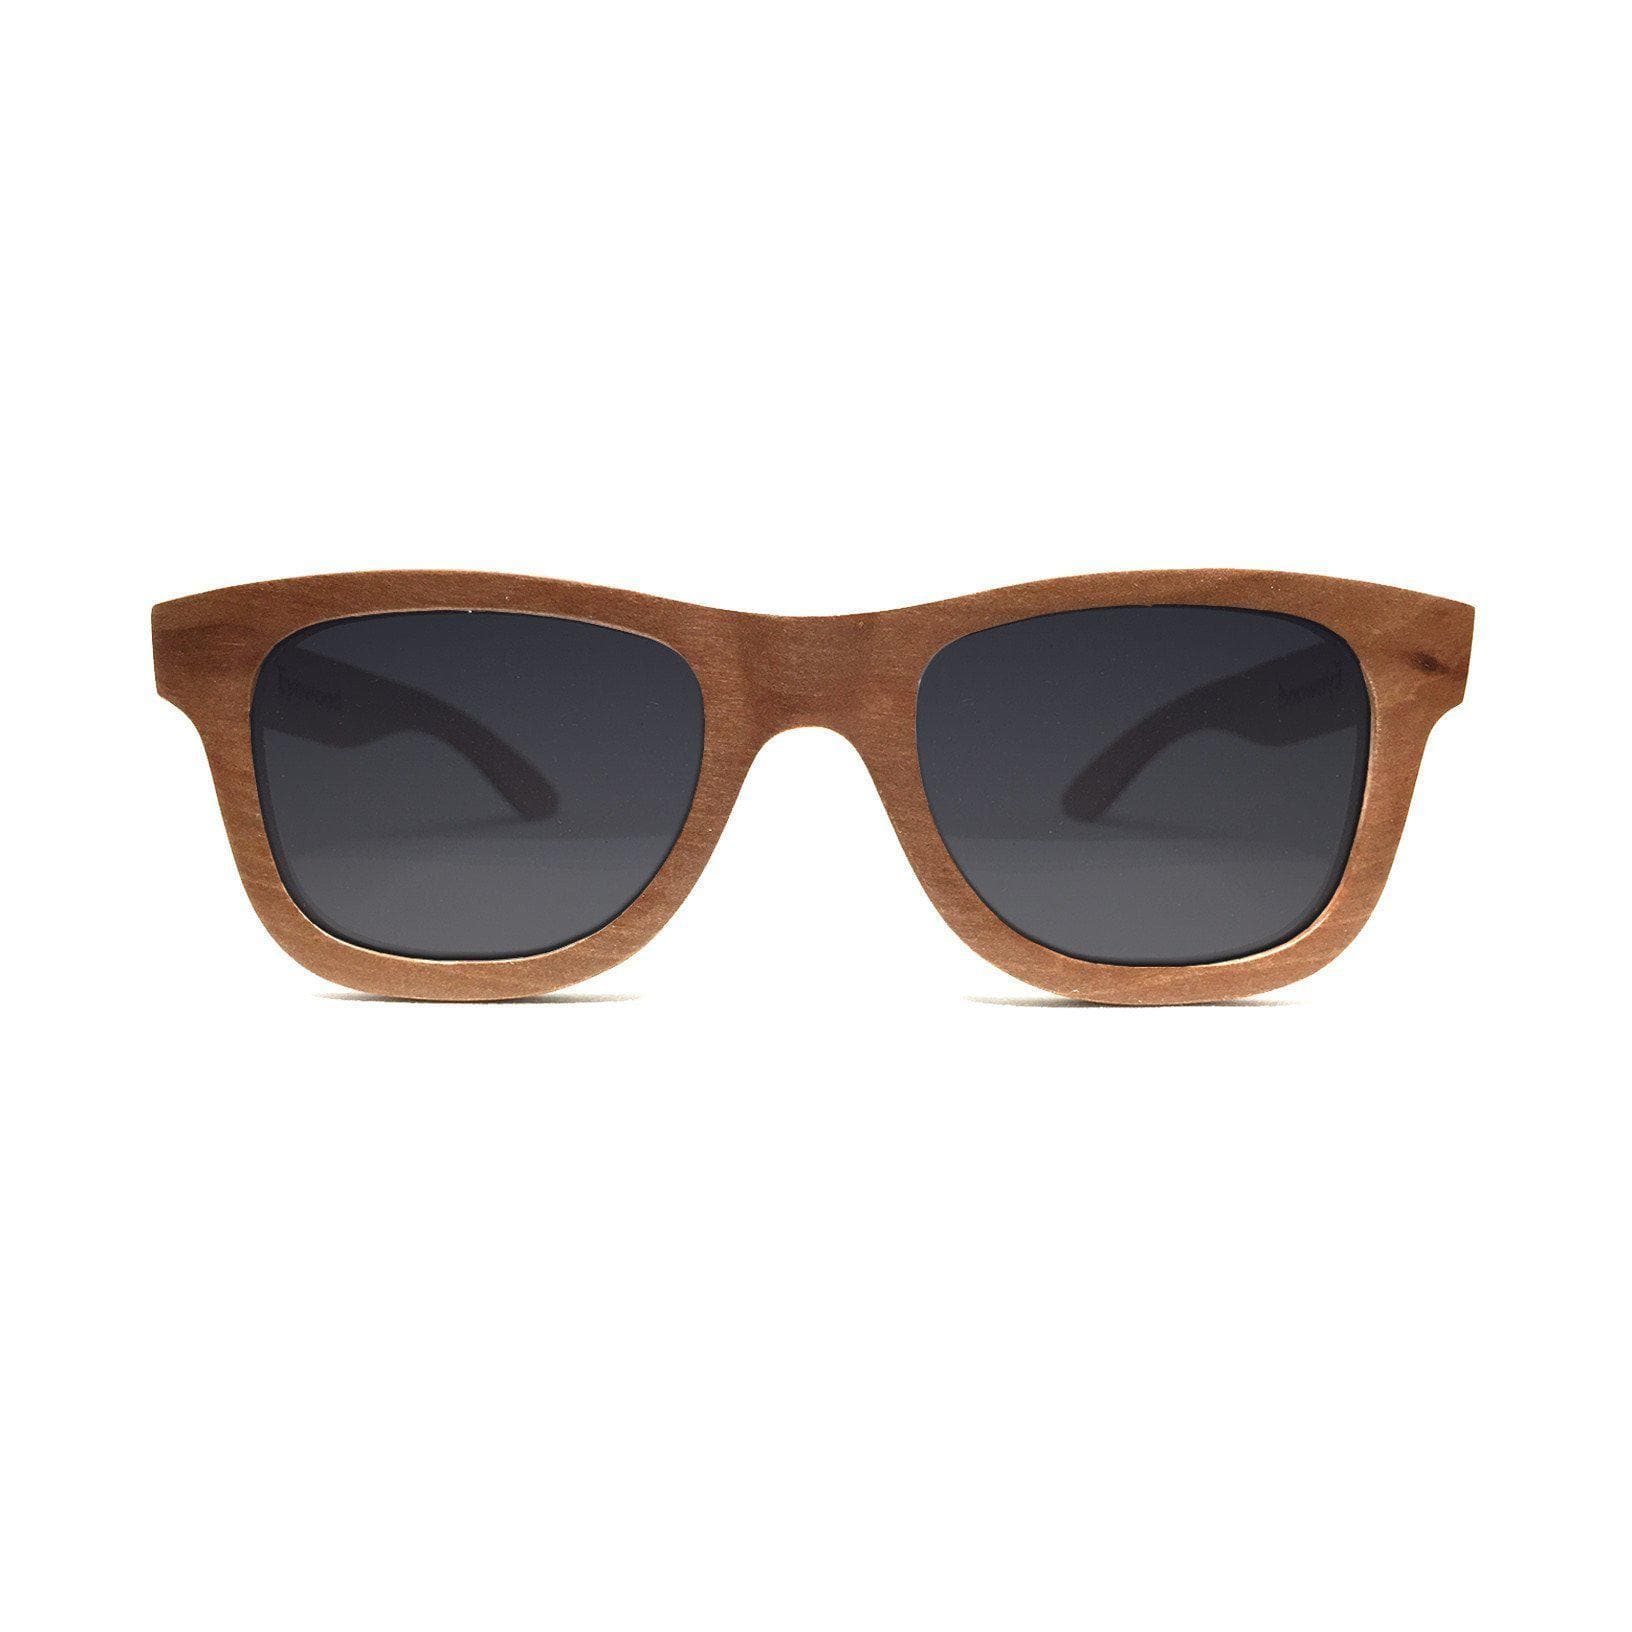 Eyewood Wayfarer - Wade - All wooden sunglasses front